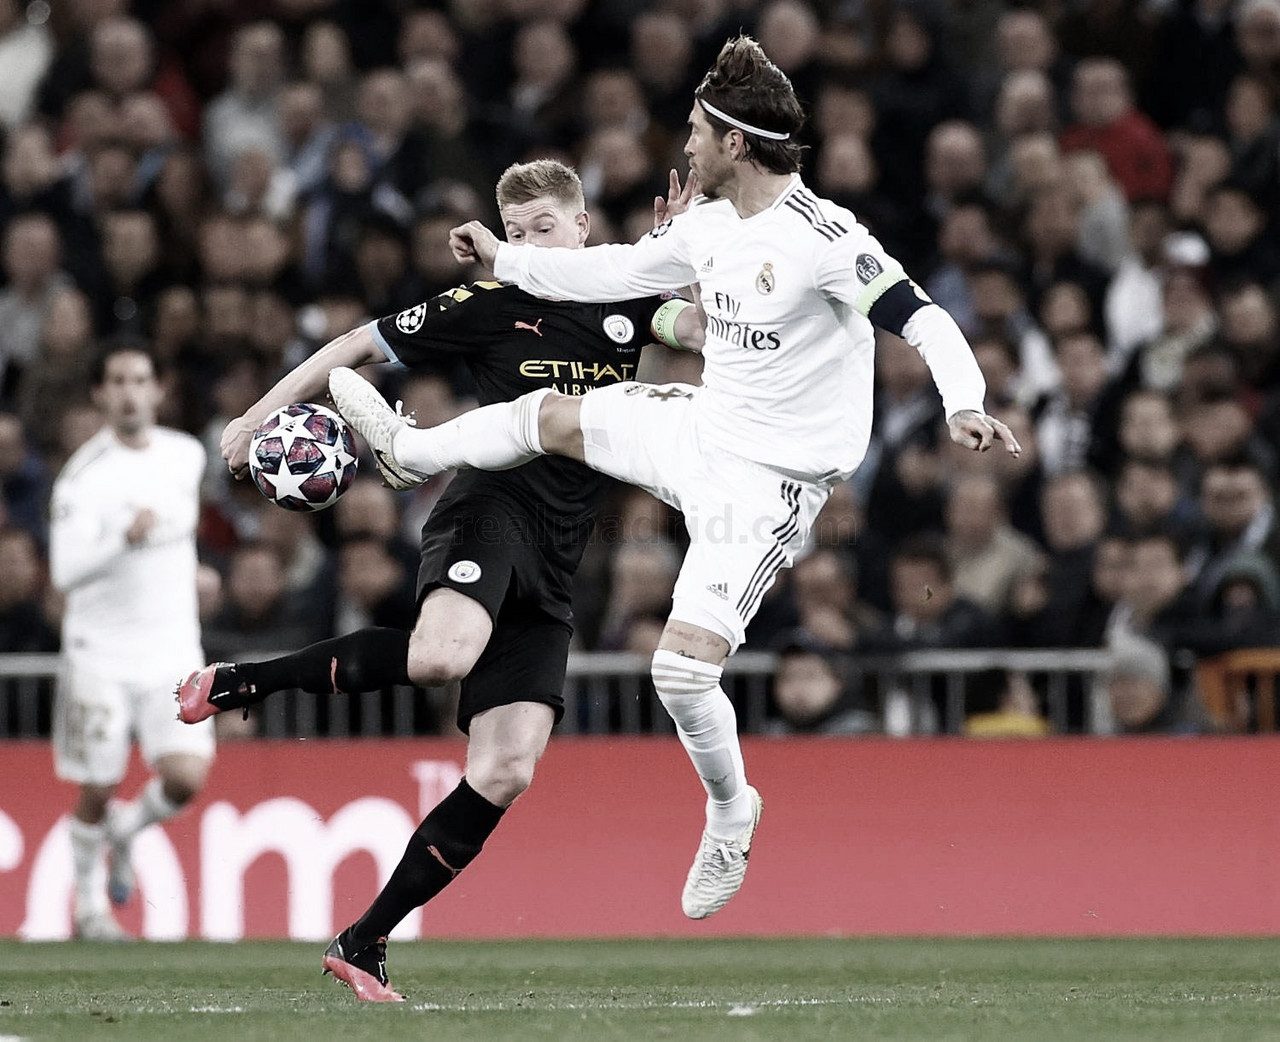 Sergio Ramos, ausencia determinante para el Manchester City vs. Real Madrid